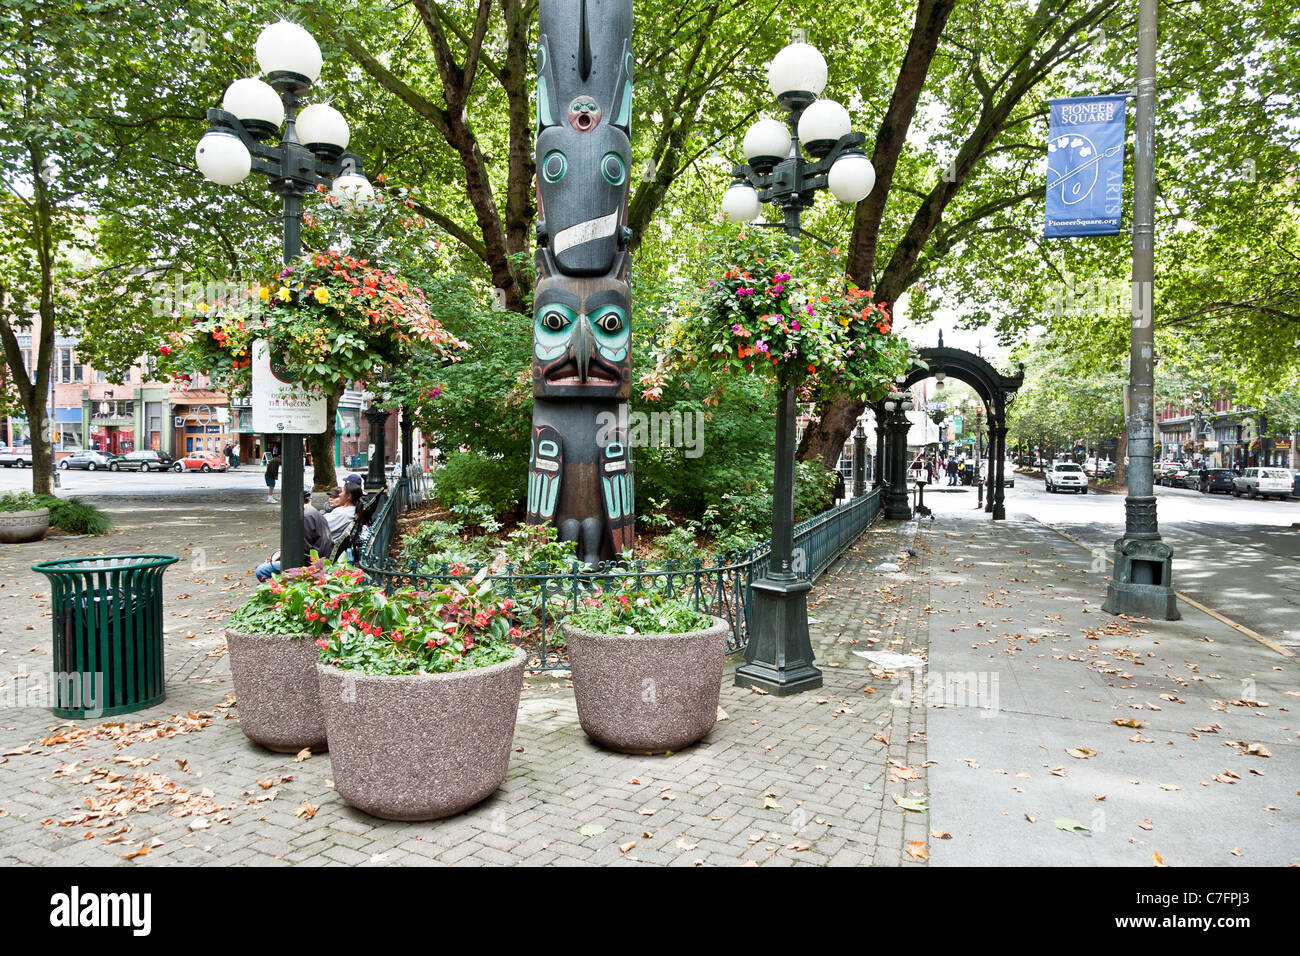 west side Pioneer Square reproduction lamp posts modern Tlingit totem pole  hanging flower baskets distant cast - Iron Pergola Stock Photos & Iron Pergola Stock Images - Alamy